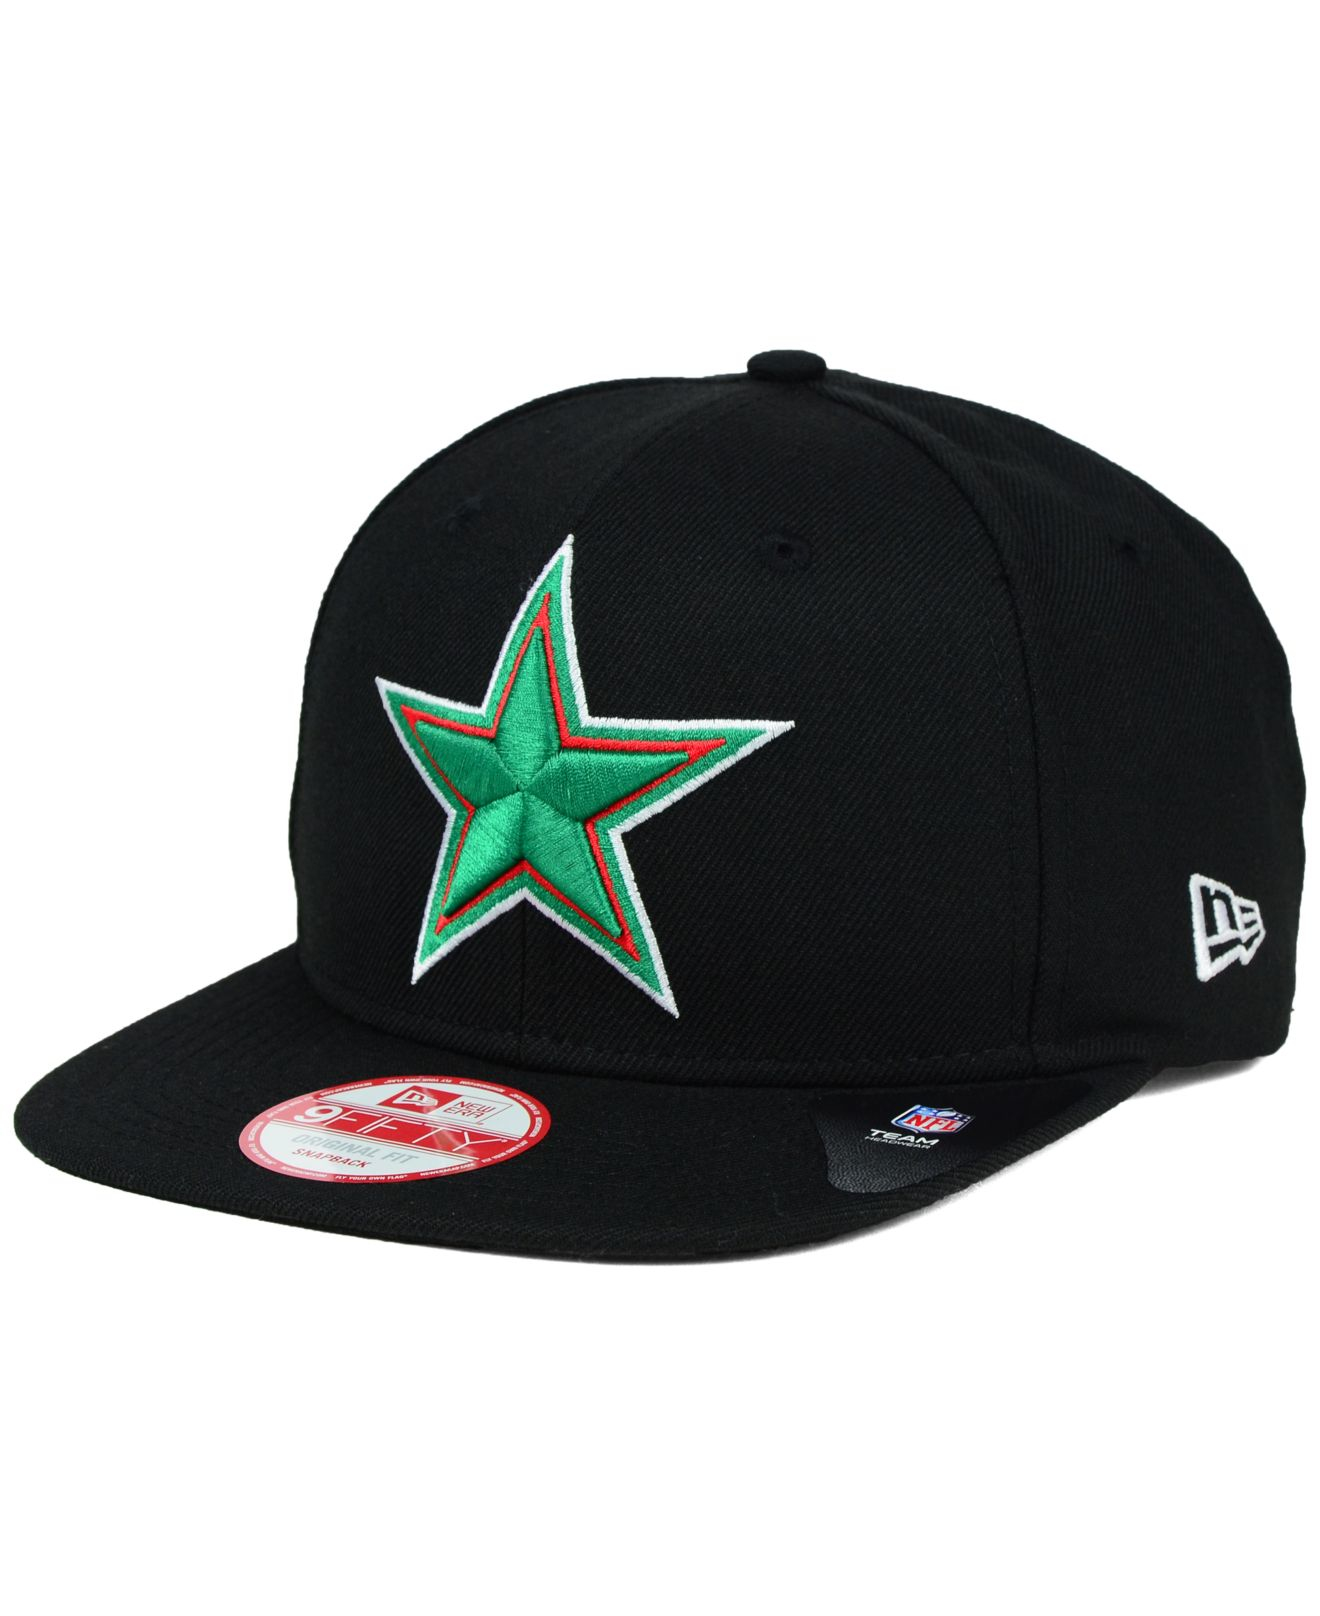 6675914a28a63 ... hat new era 39thirty nfl 2017 kickoff fitted navy e06ab 9efc4  promo  code for lyst ktz dallas cowboys mexico heritage 9fifty snapback cap in  cc099 50b14